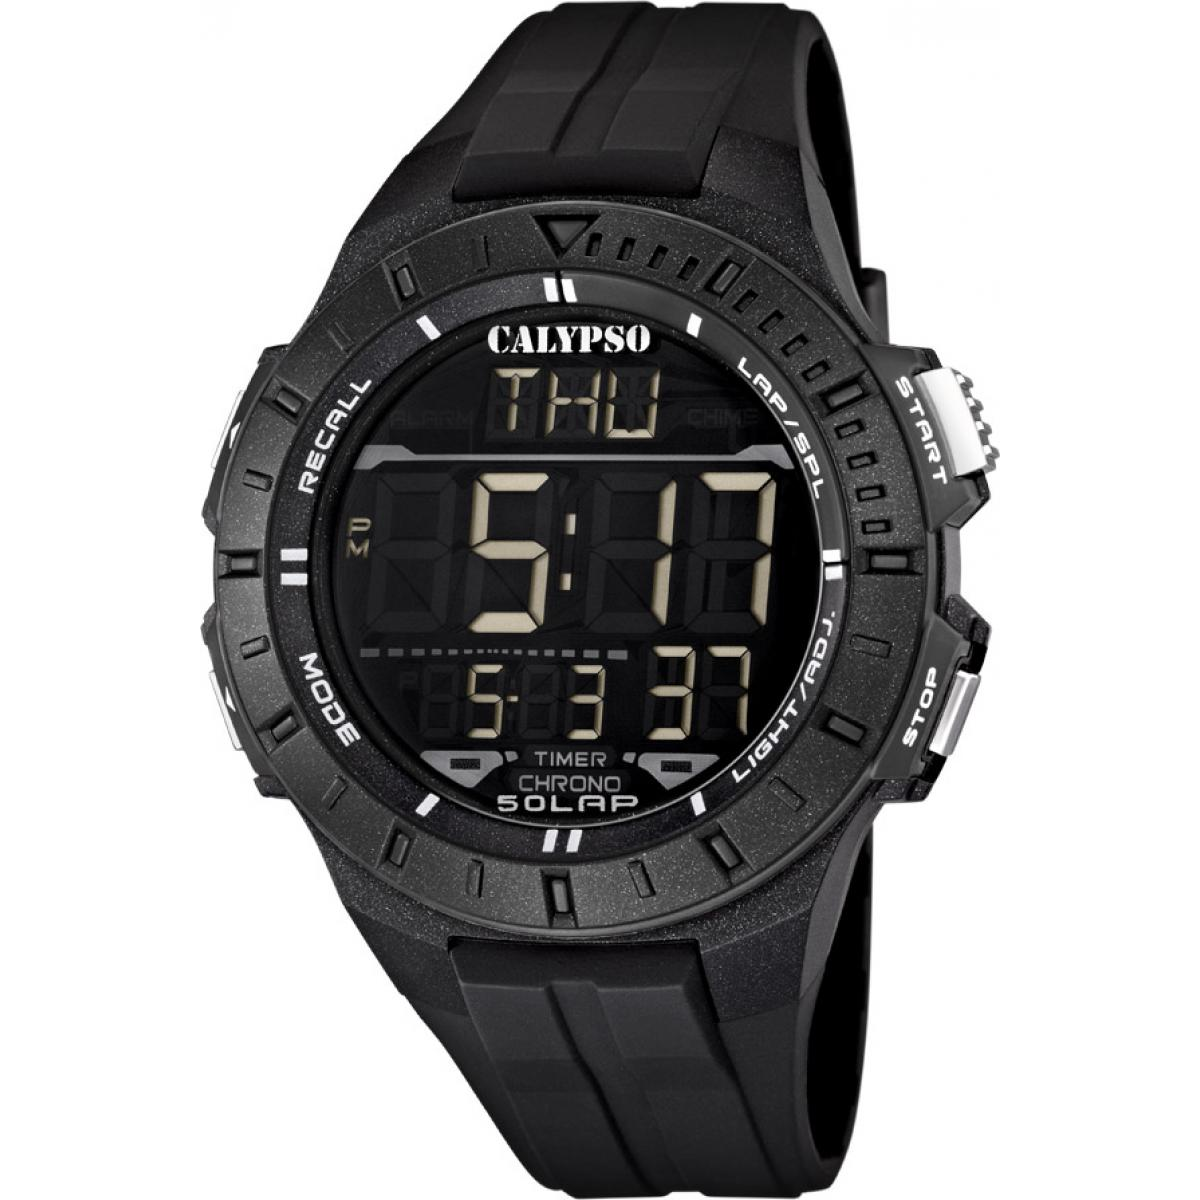 Montre Calypso Silicone Digital For Man K5607-6 - Homme